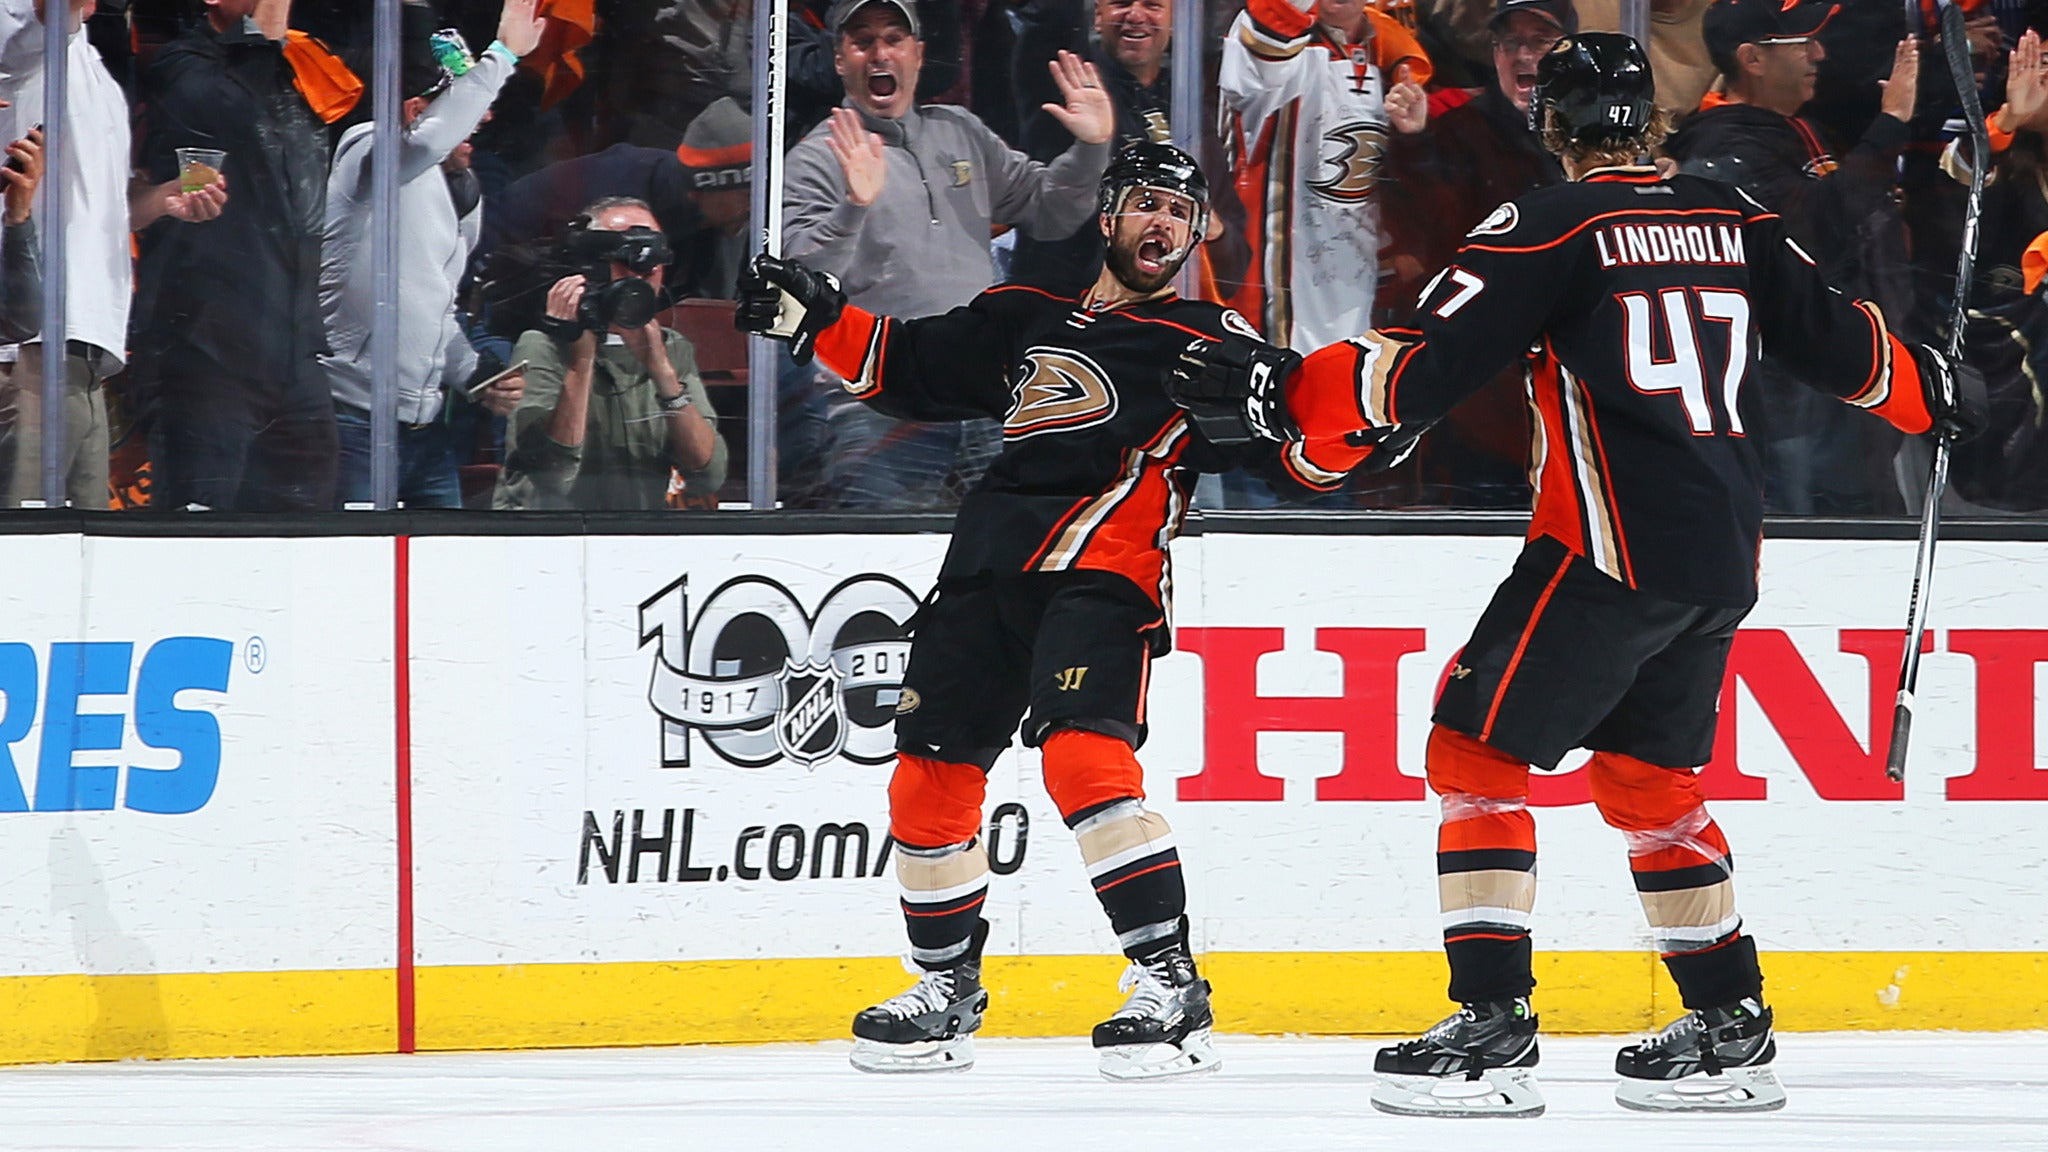 Anaheim Ducks vs. Vancouver Canucks at Honda Center - Anaheim, CA 92806